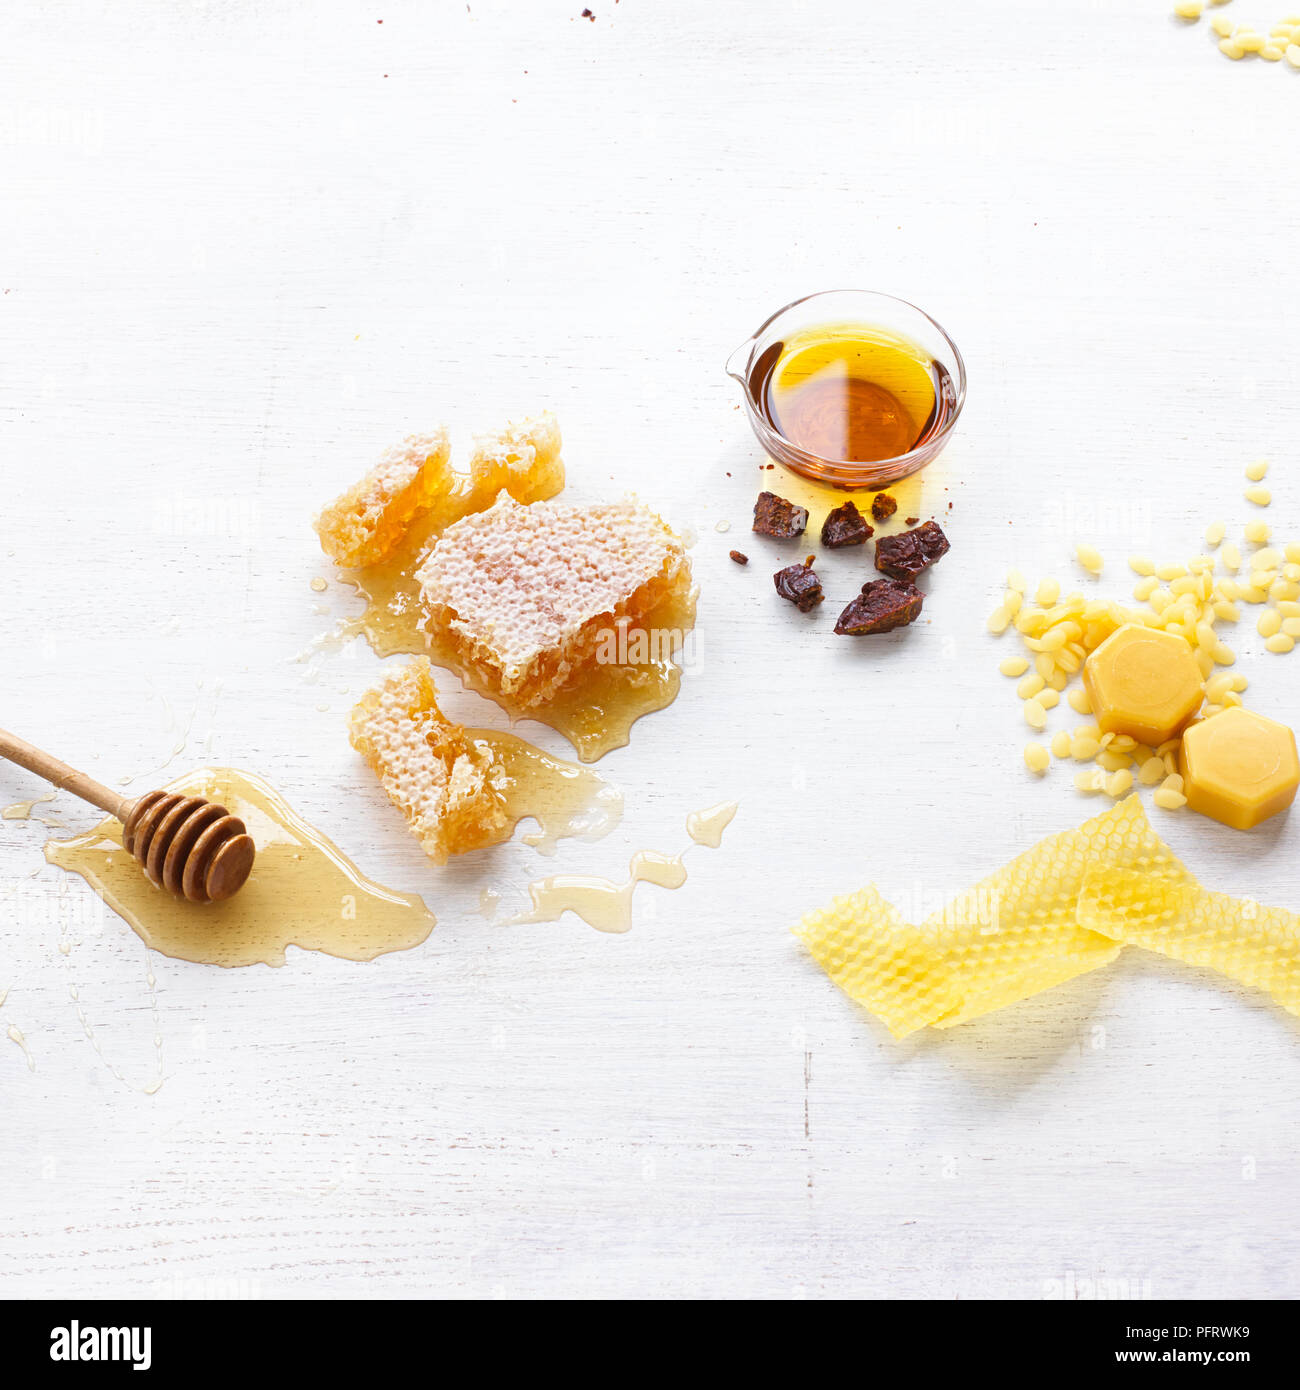 Bee ingredients for making natural cosmetics, beeswax, honey, propolis - Stock Image